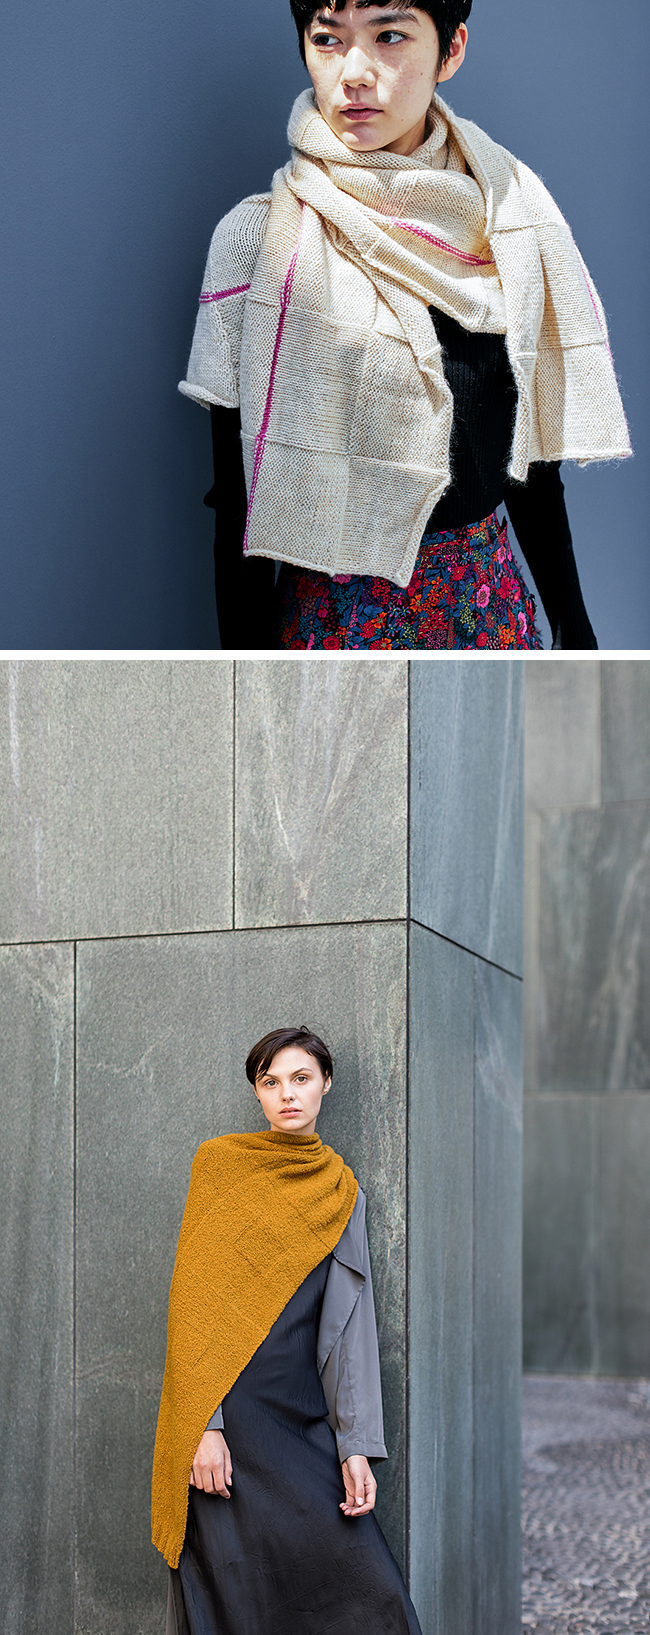 New Favorites: All square (knitting patterns)